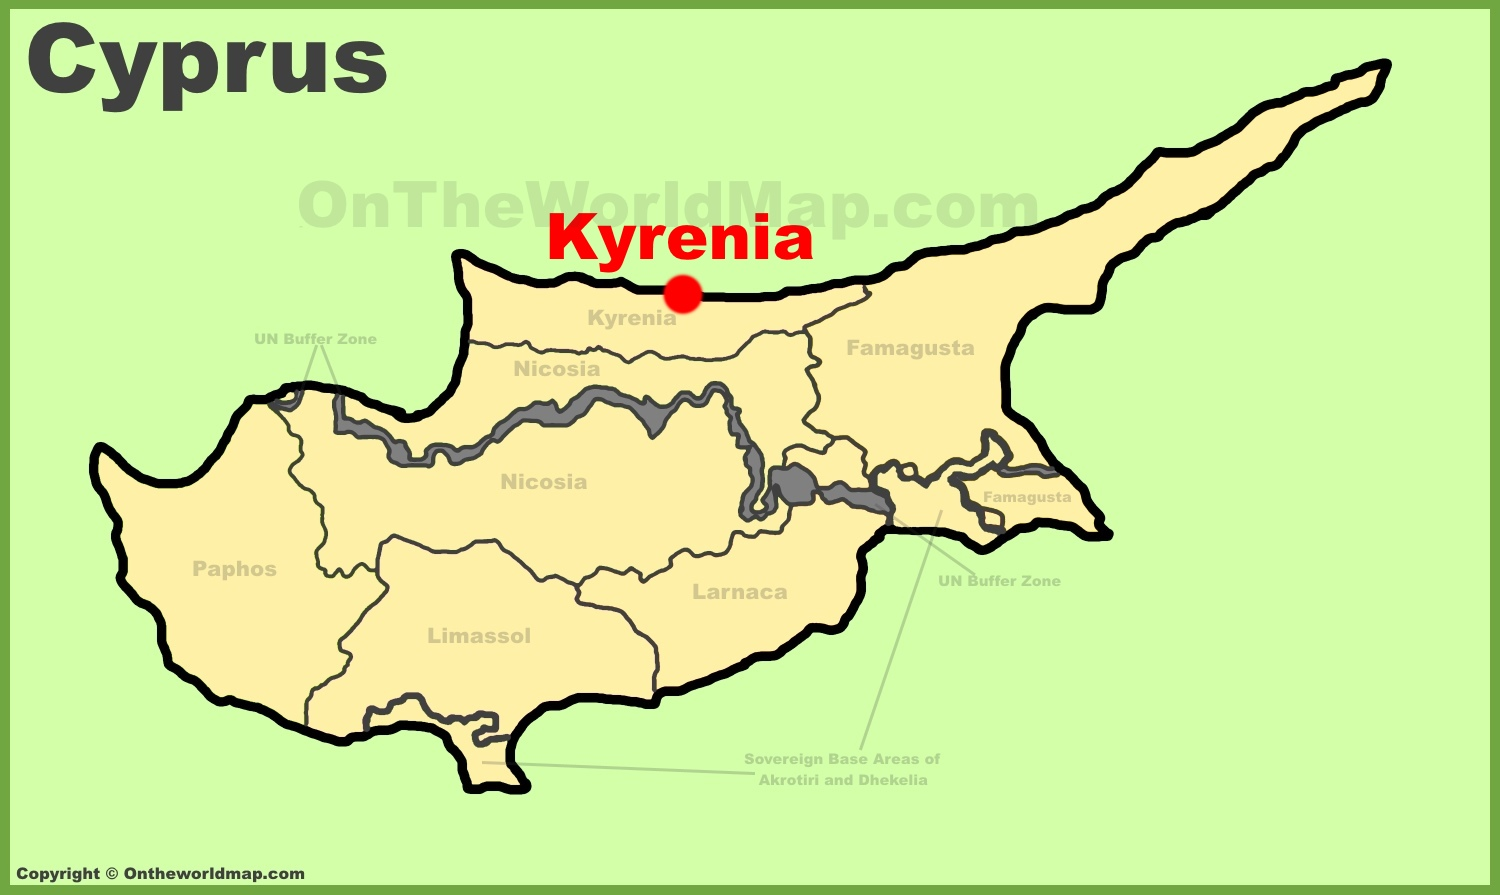 Kyrenia location on the Cyprus map